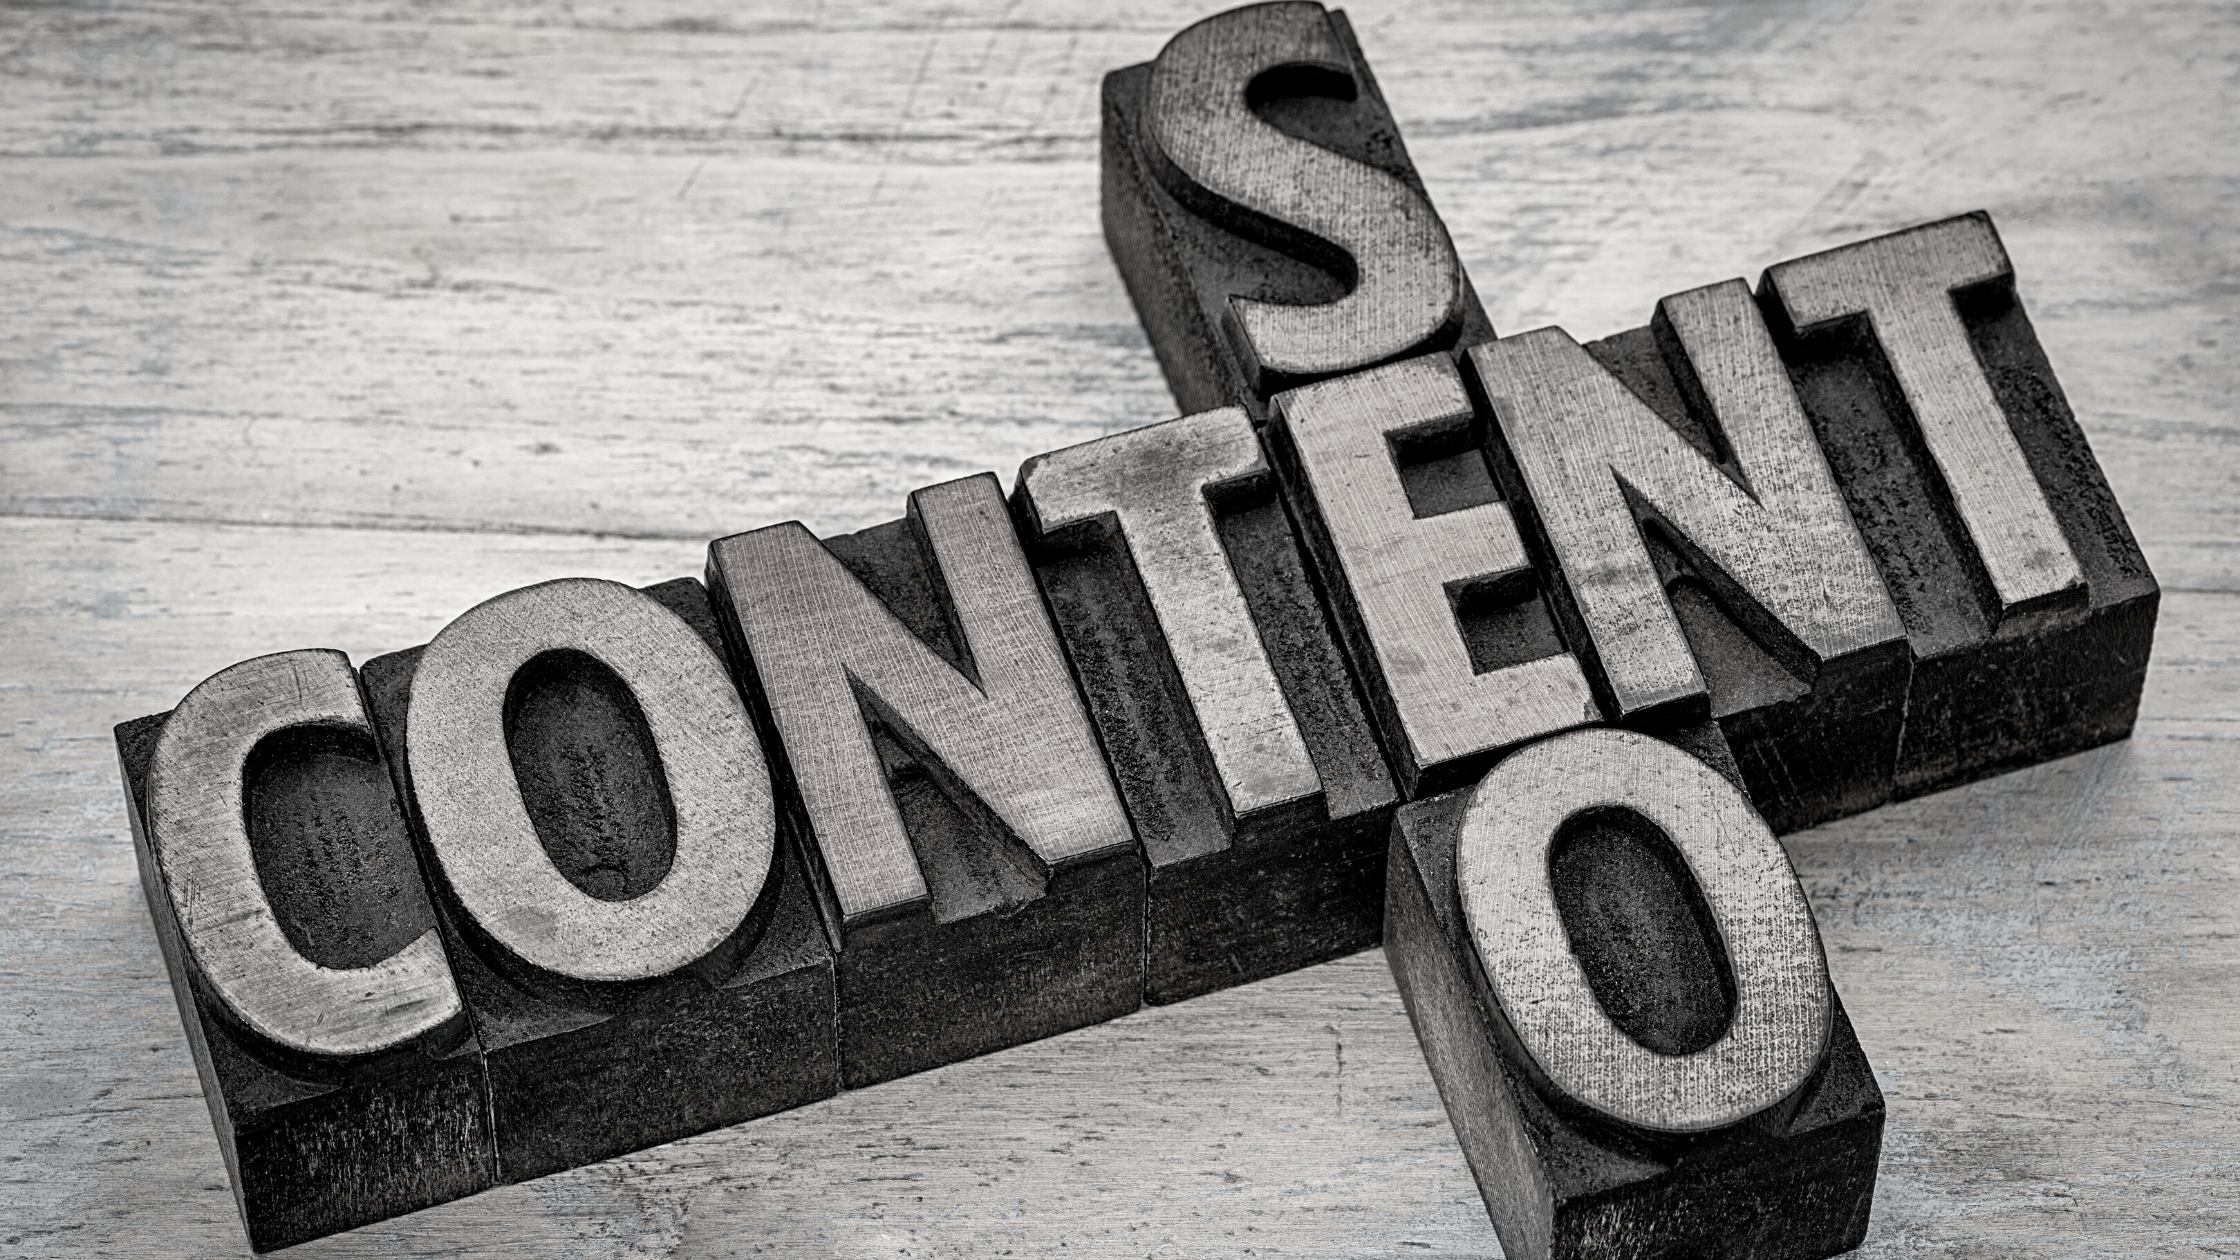 wooden block words that say content and seo intersect